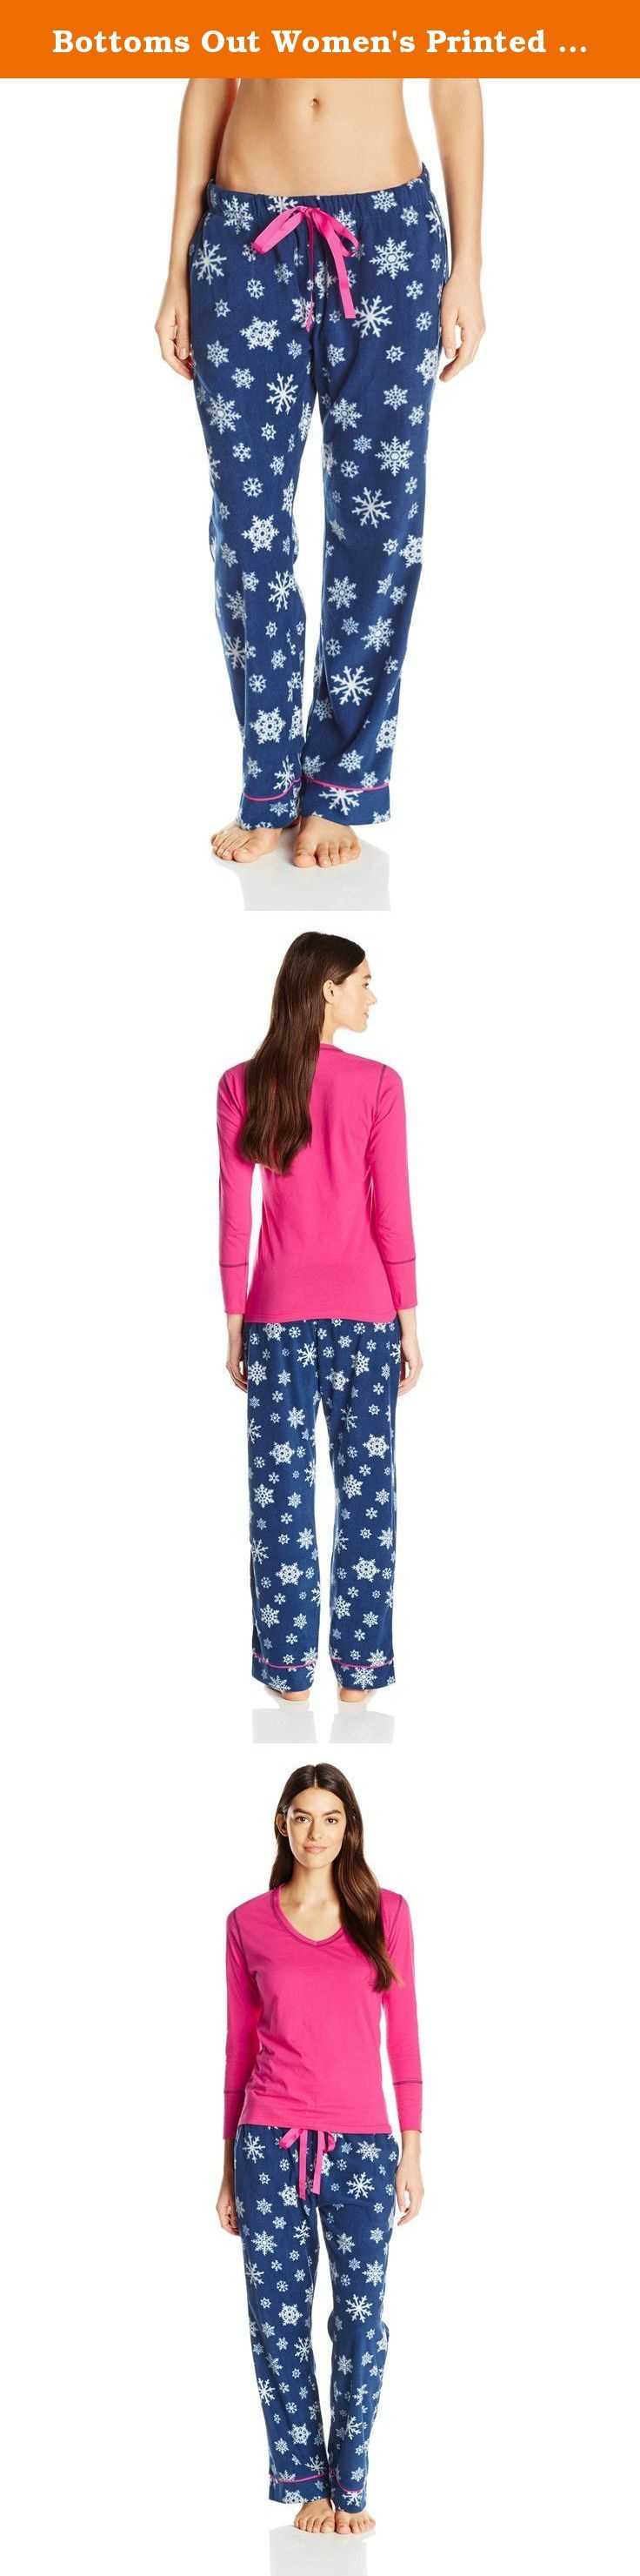 Bottoms Out Women's Printed Ladies Microfleece Pajama Set, Navy, Medium. Ladies pajama set with knit V-neck top and micro fleece pants.